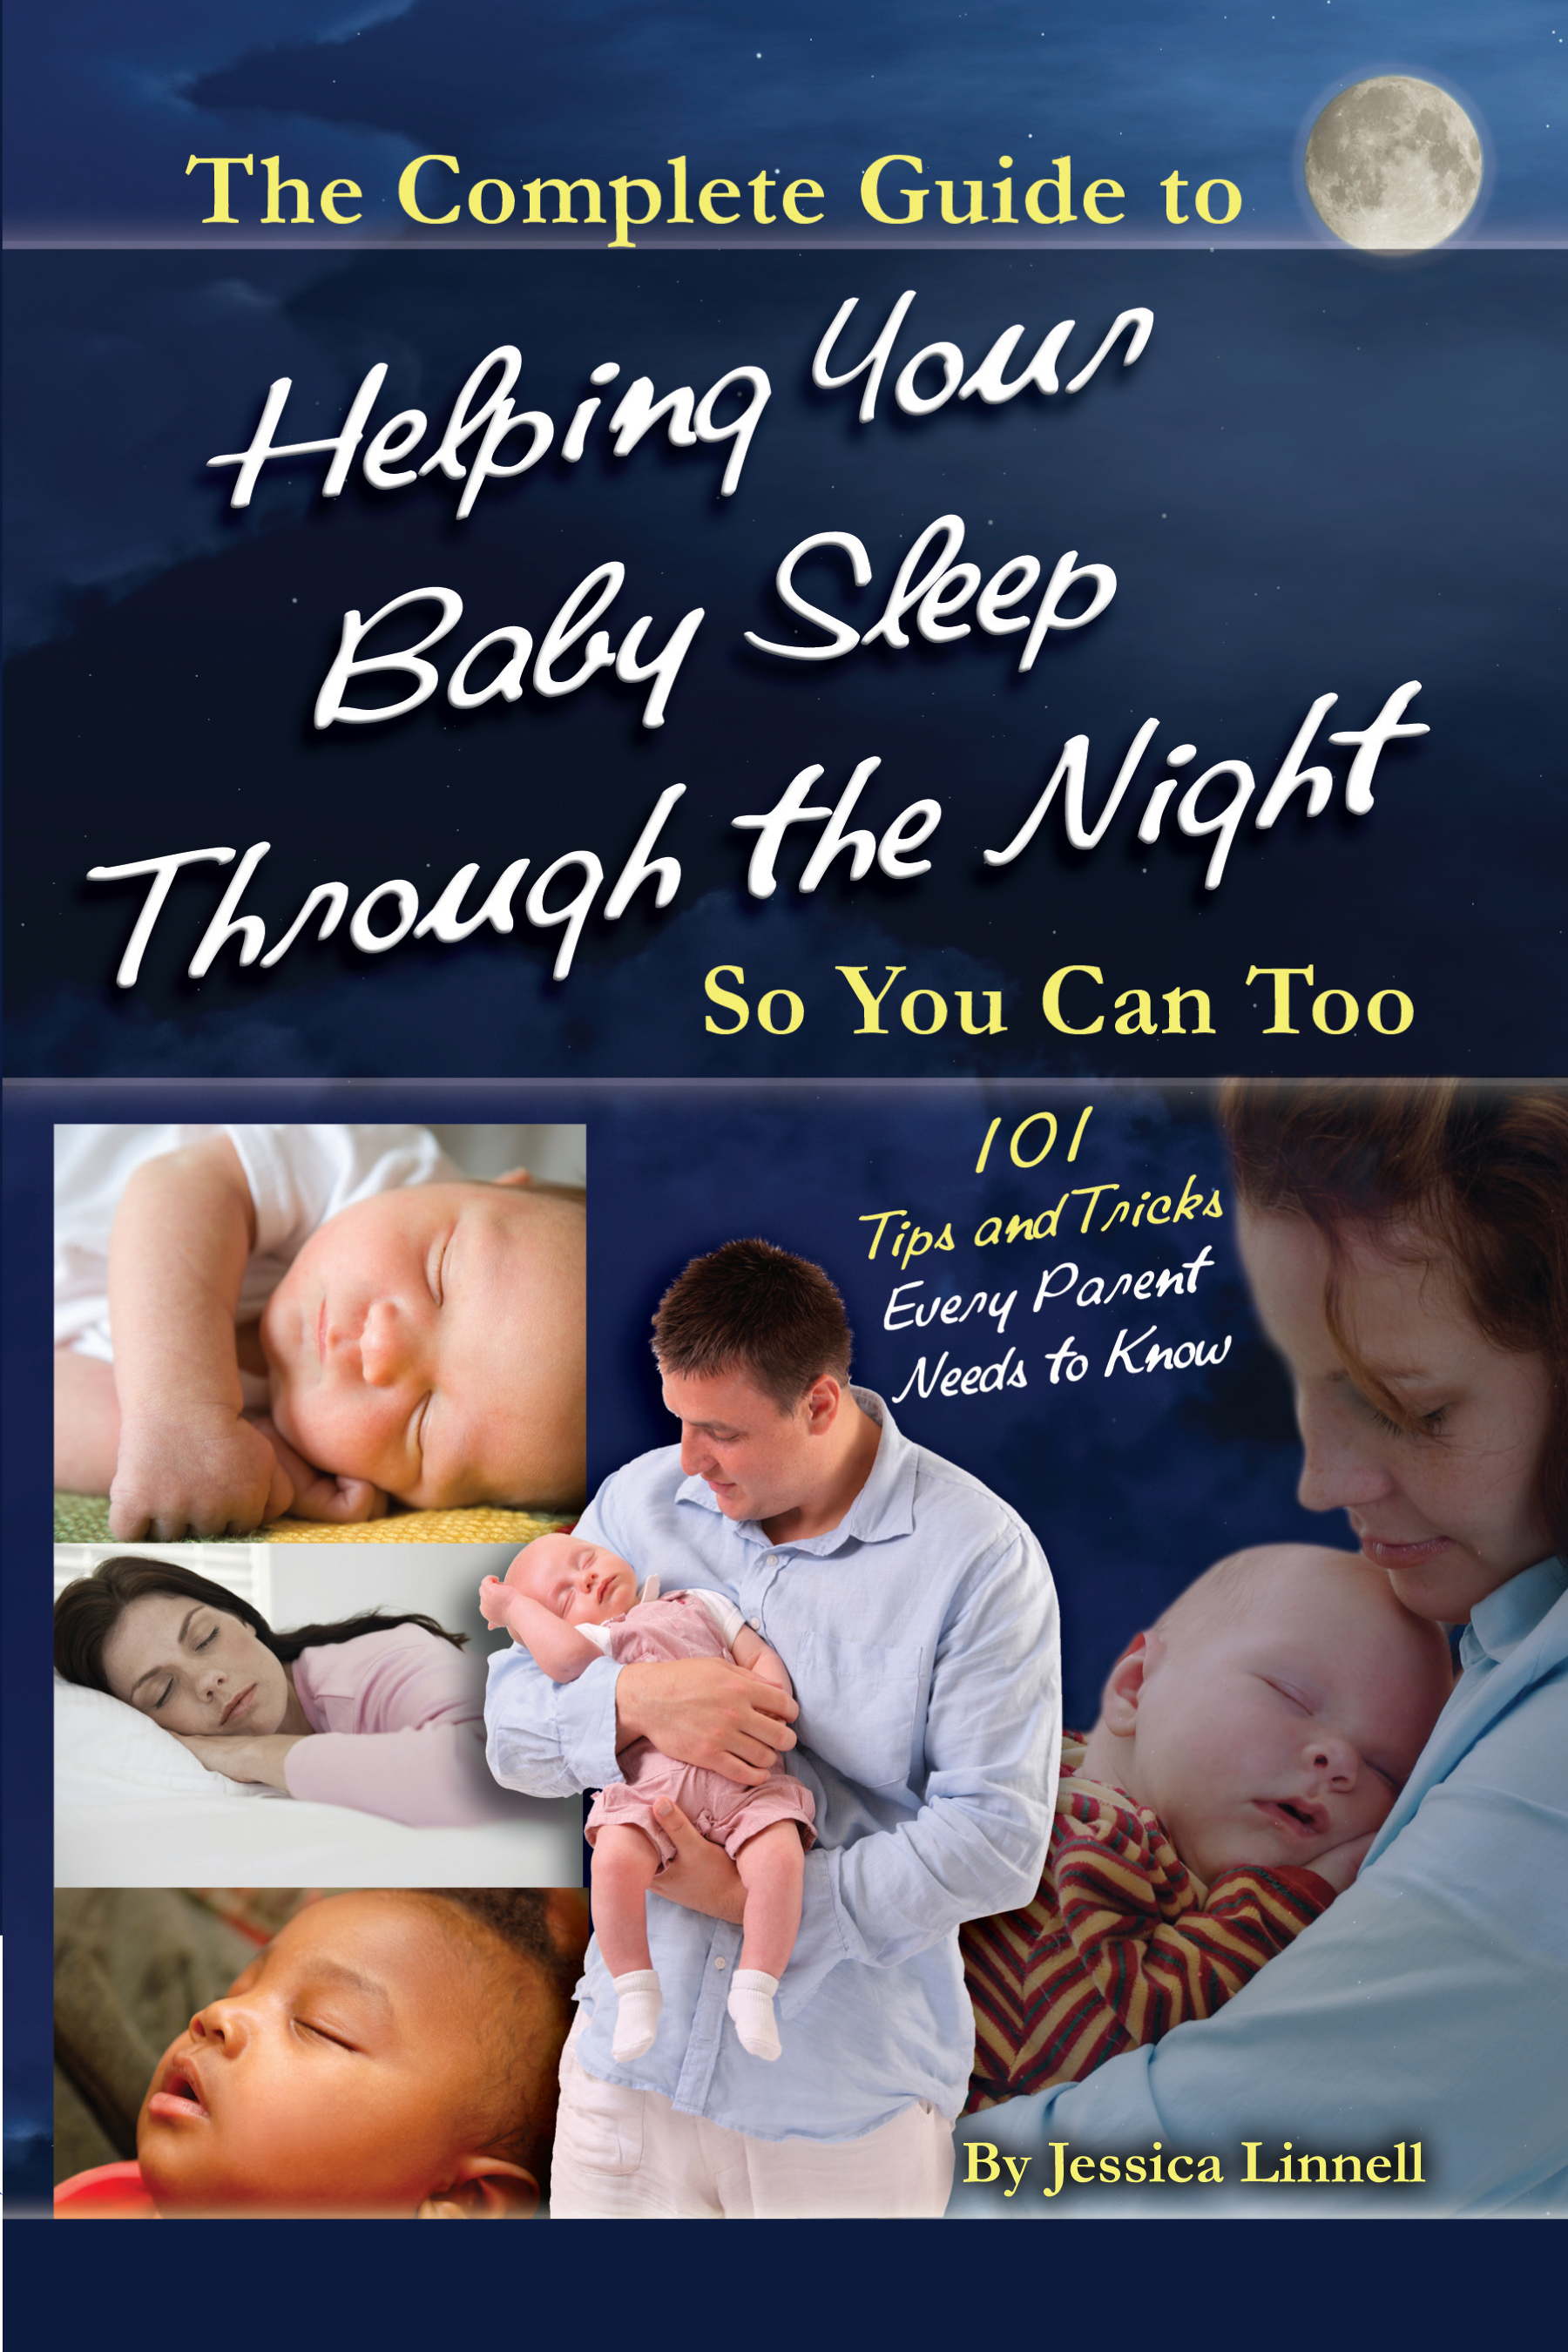 The Complete Guide to Helping Your Baby Sleep Through the Night So You Can Too  101 Tips and Tricks Every Parent Needs to Know